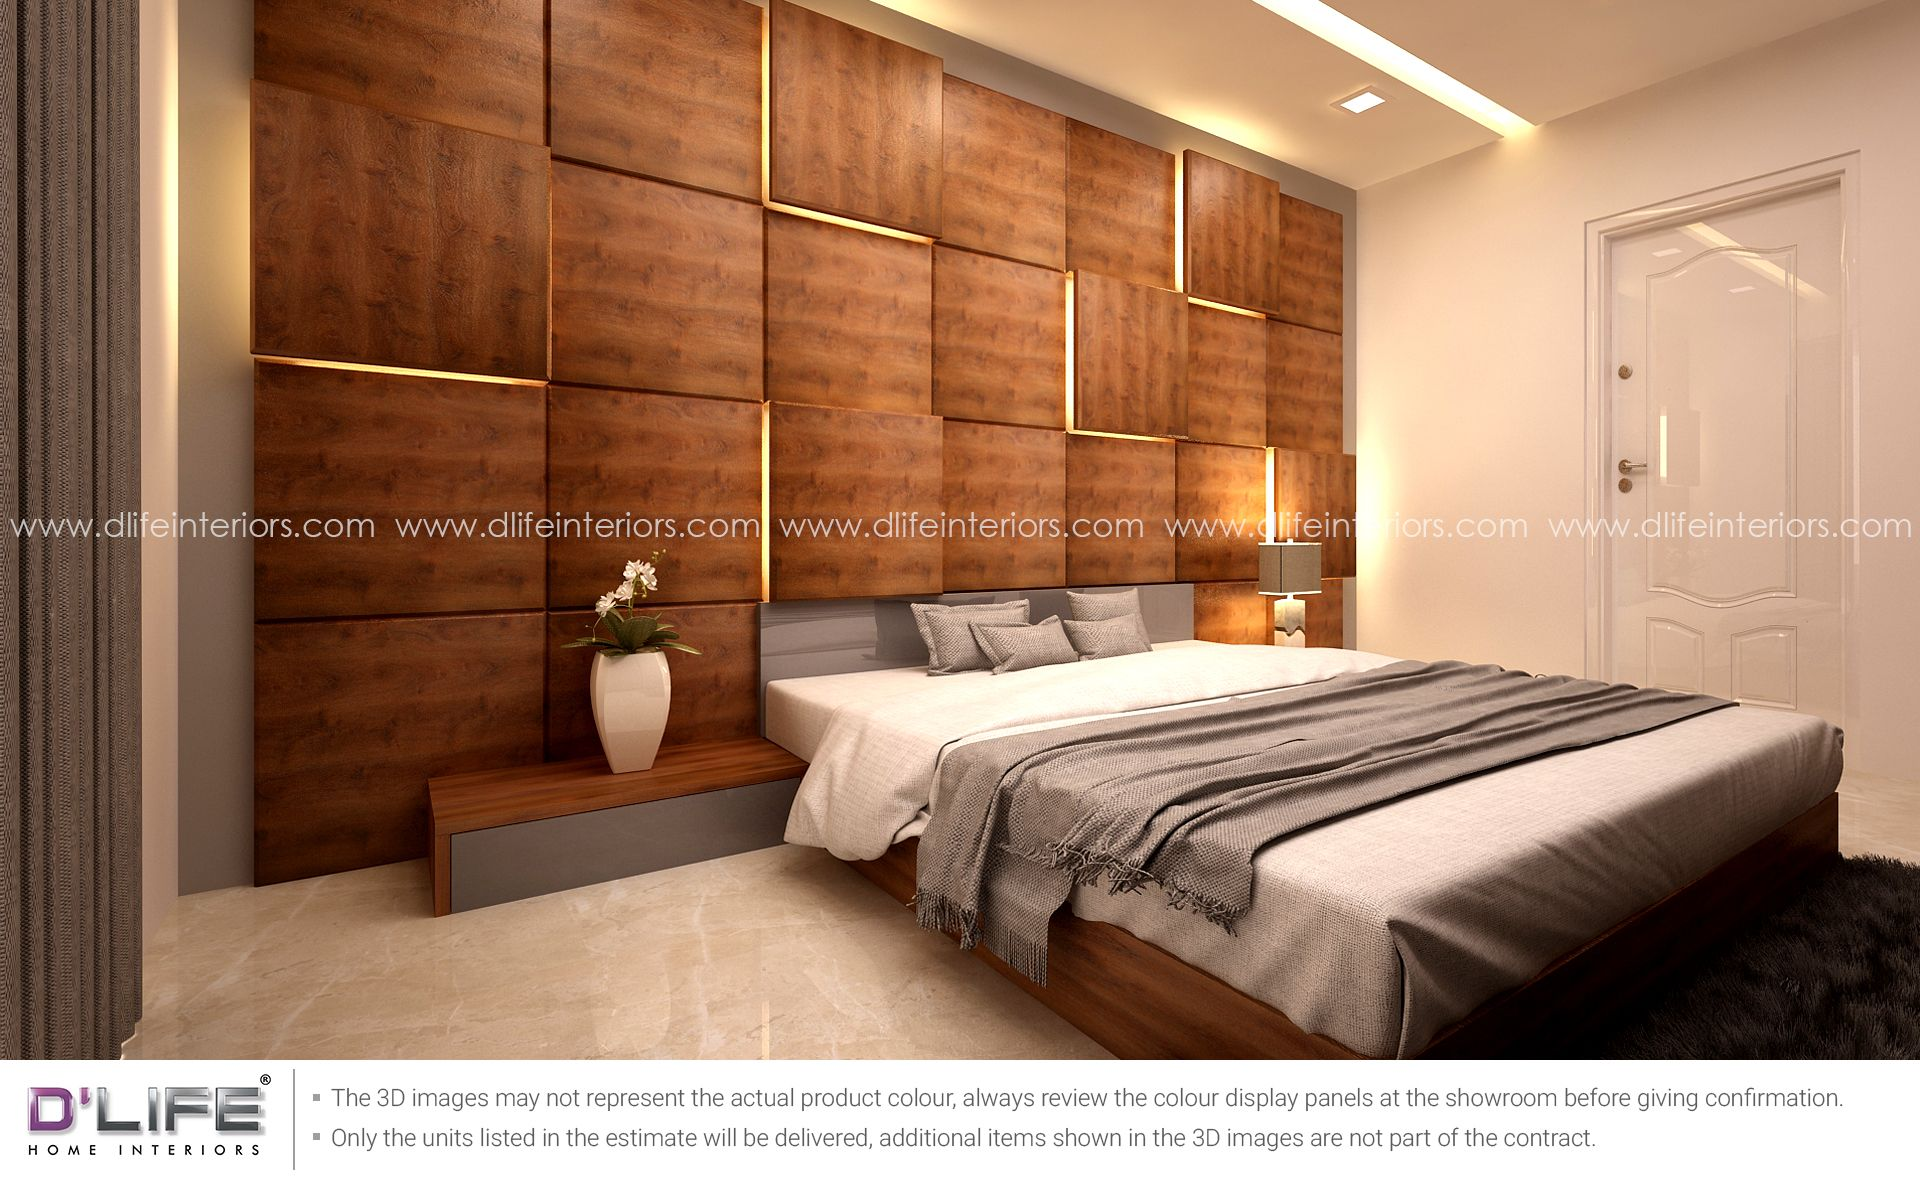 Bedroom With Beautiful Wooden Paneling Bedroom Interior Bedroom Design Master Bedroom Design